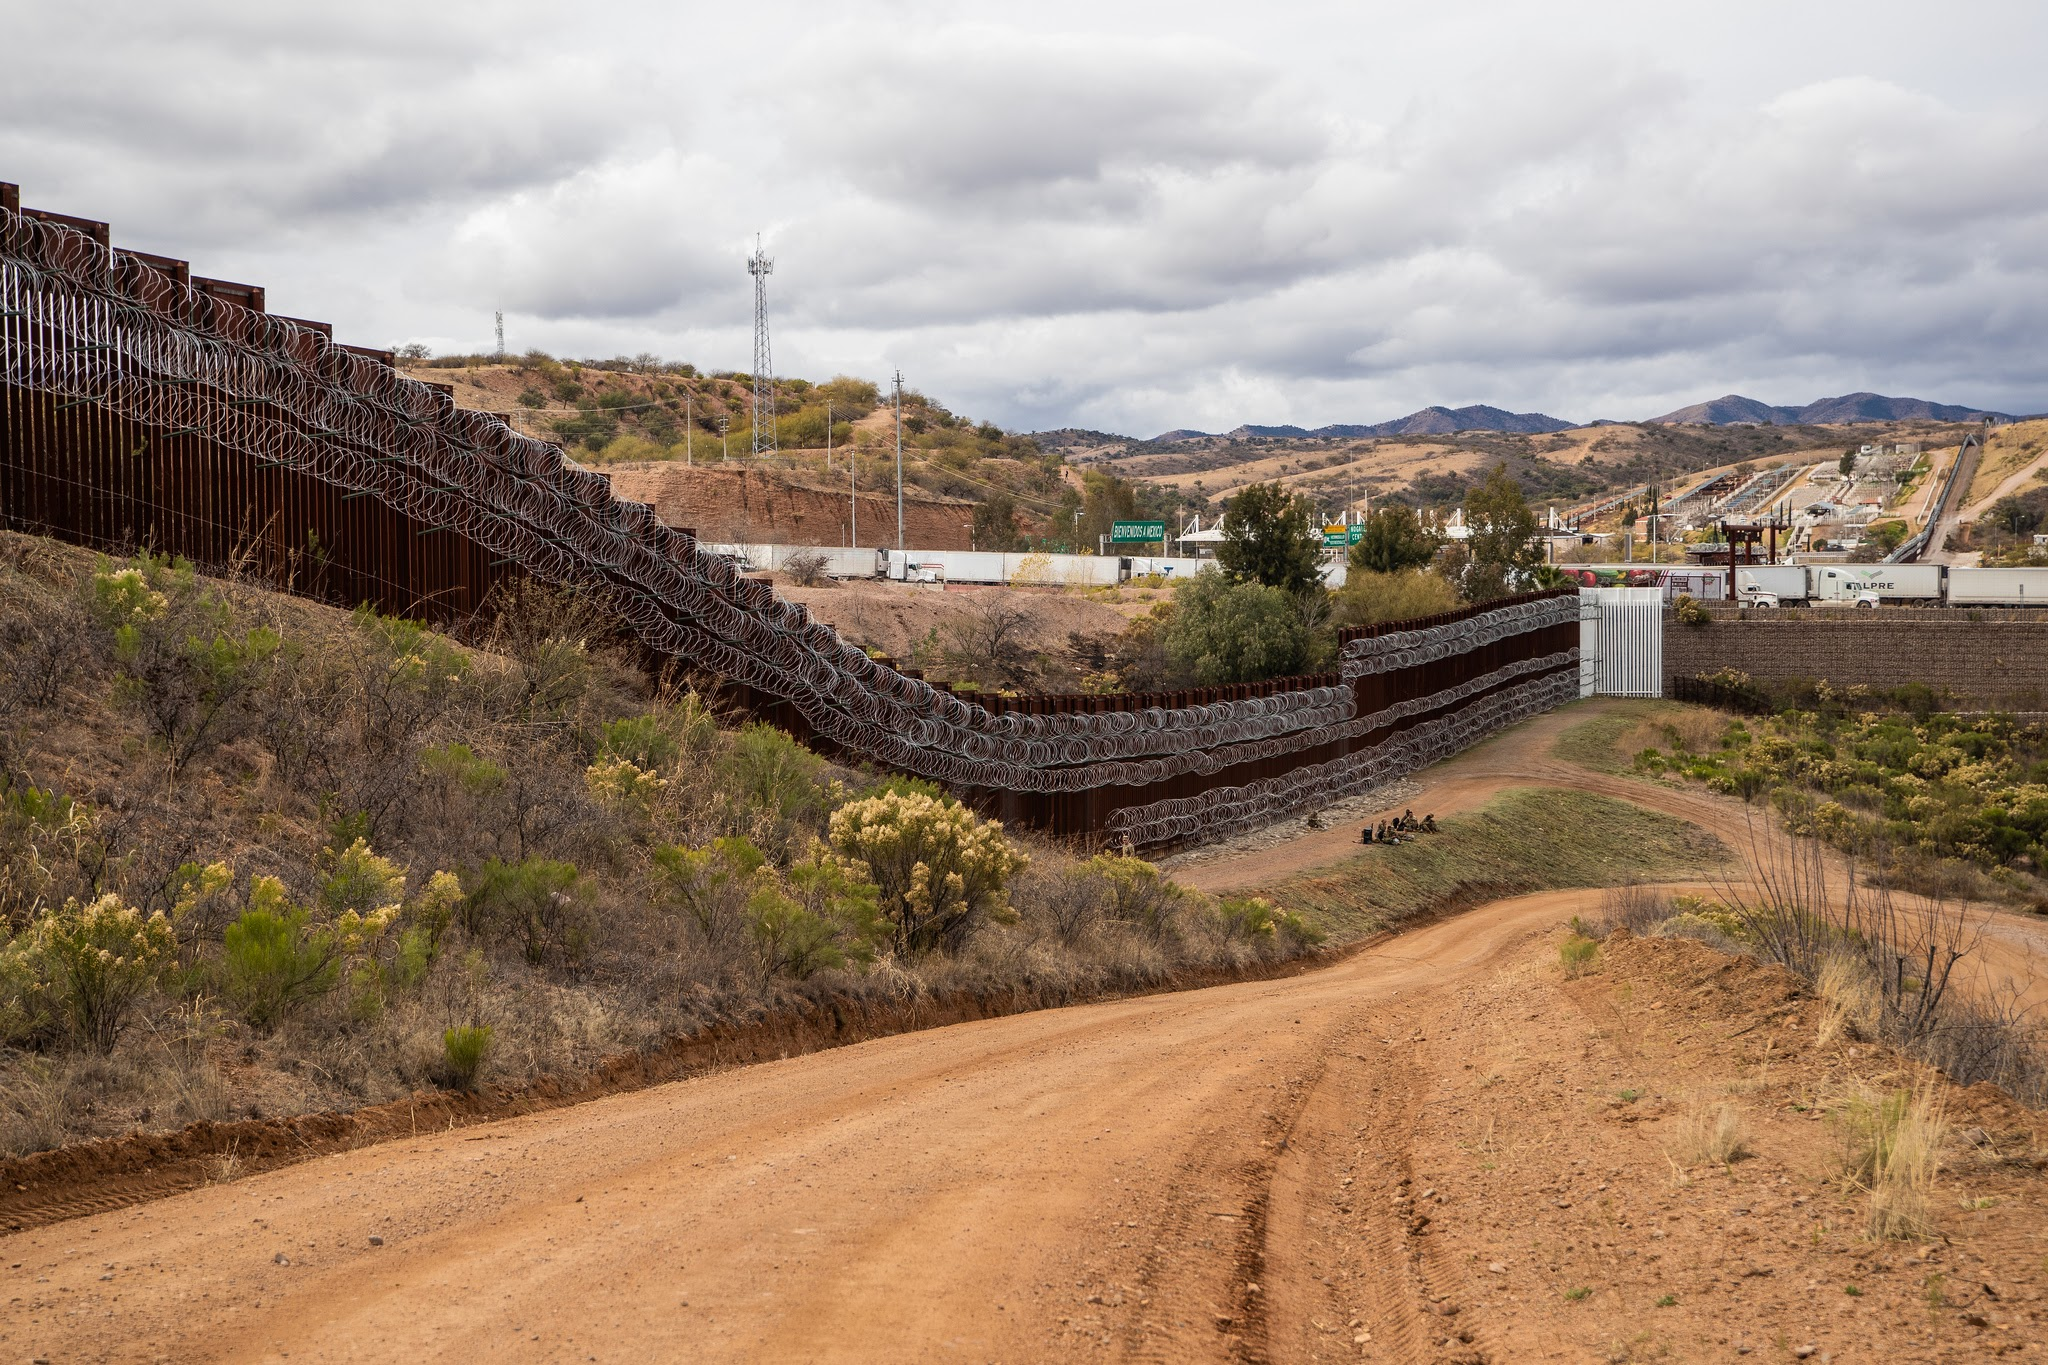 James Thunder: The border wall battle is beyond eminent domain